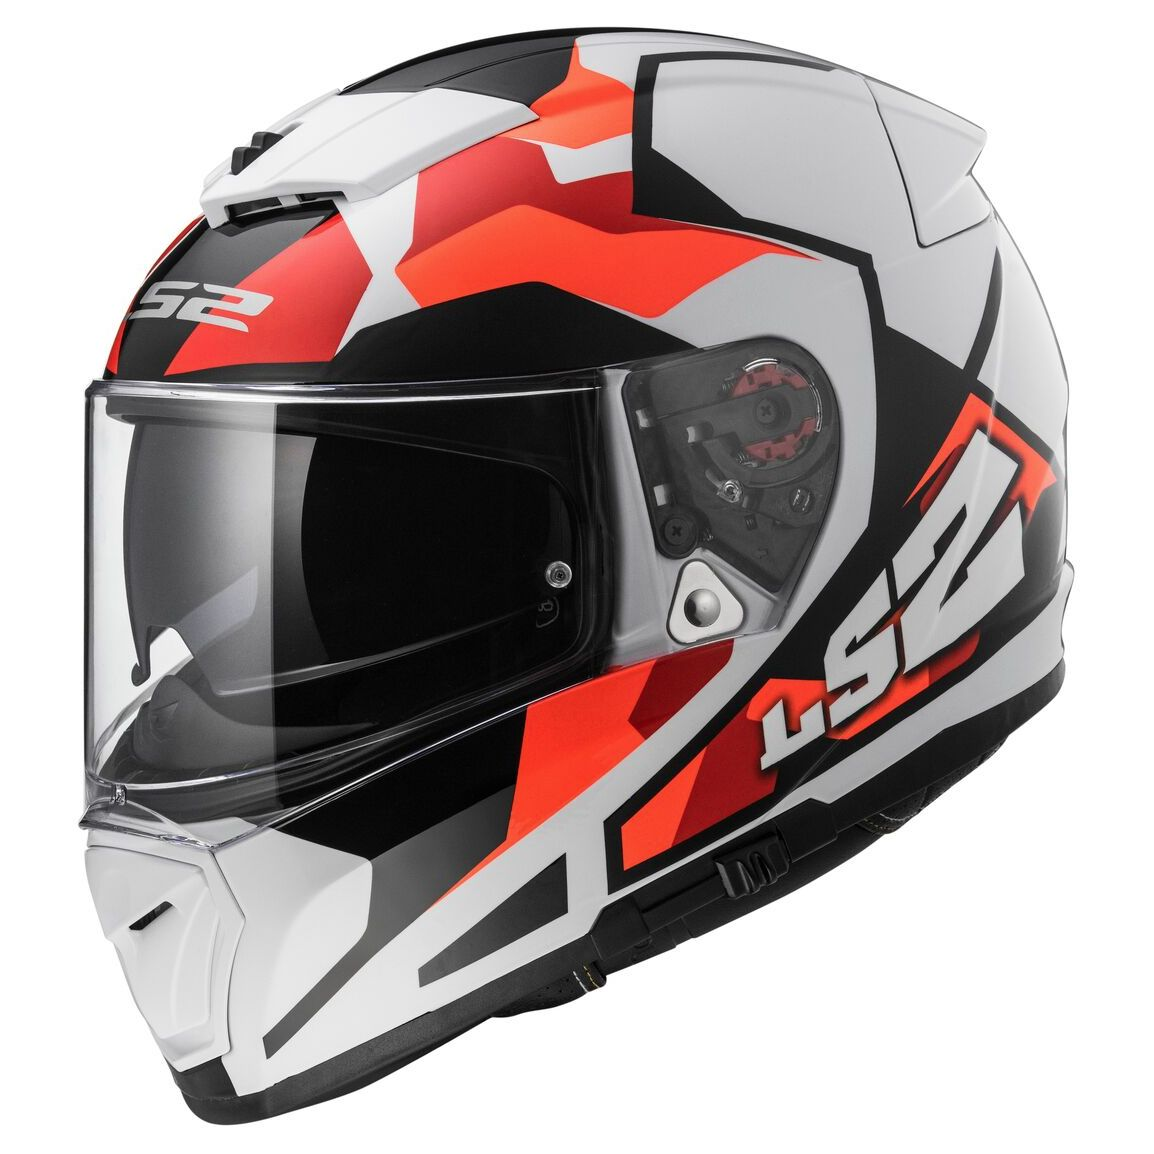 Casco LS2 DESTOCKAGE FF390 BREAKER SERGENT